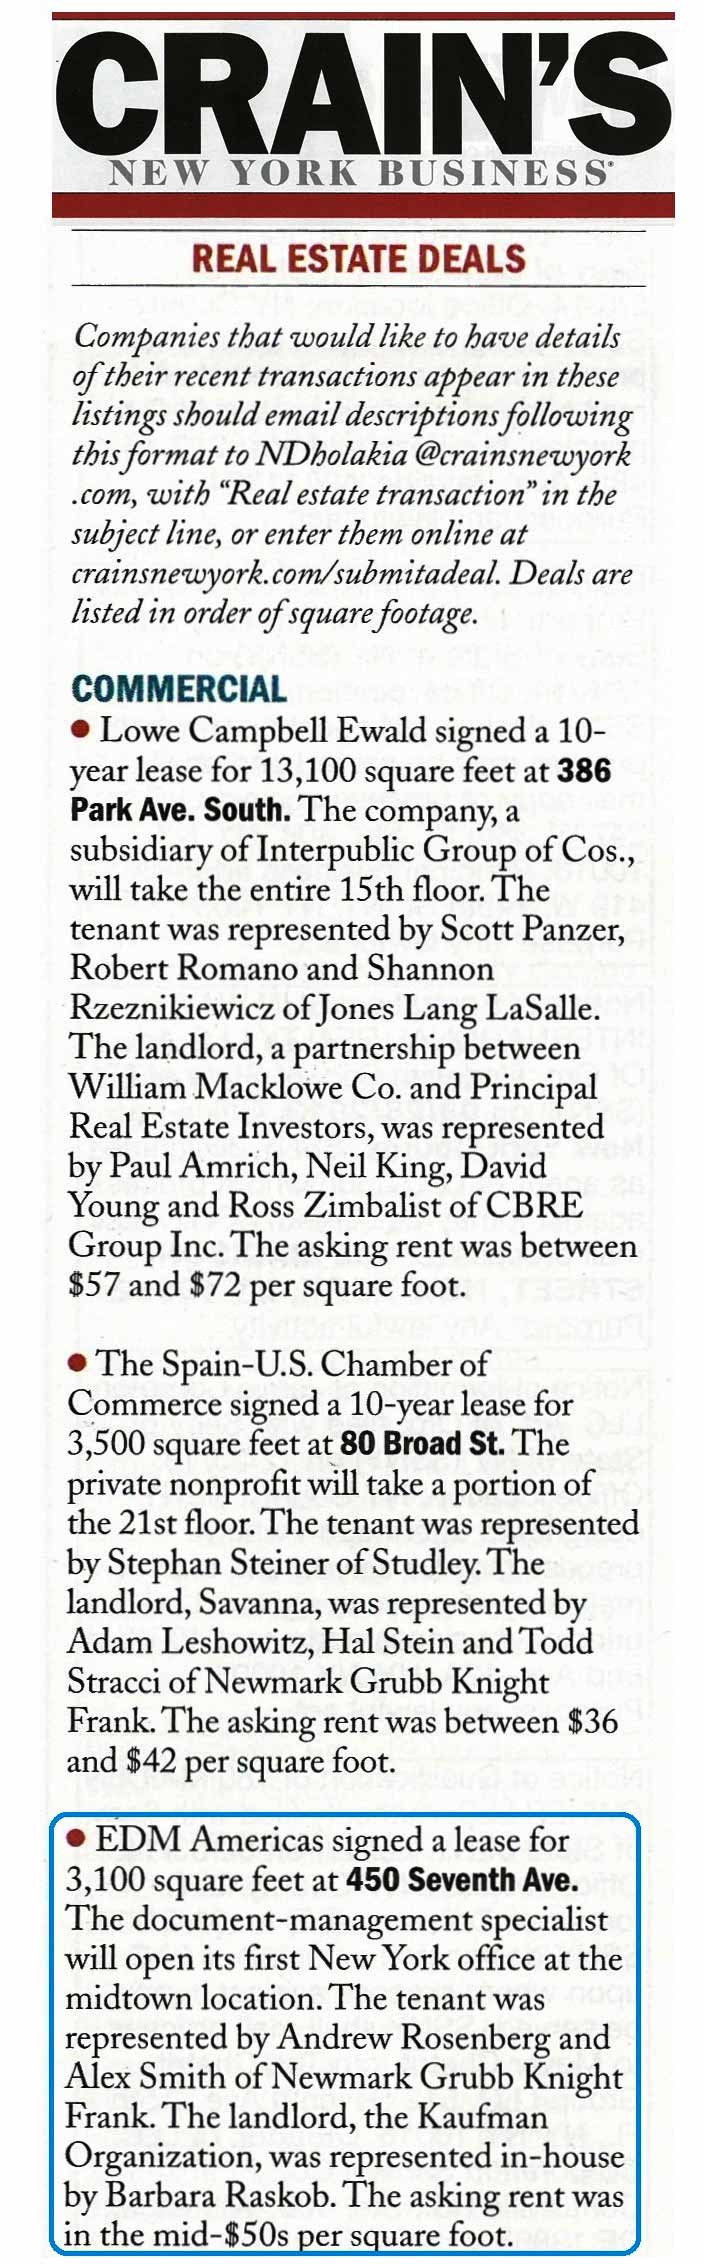 Crain's-New-York-Business,-Real-Estate-Deals-450-Seventh-Ave,-3.23.2014